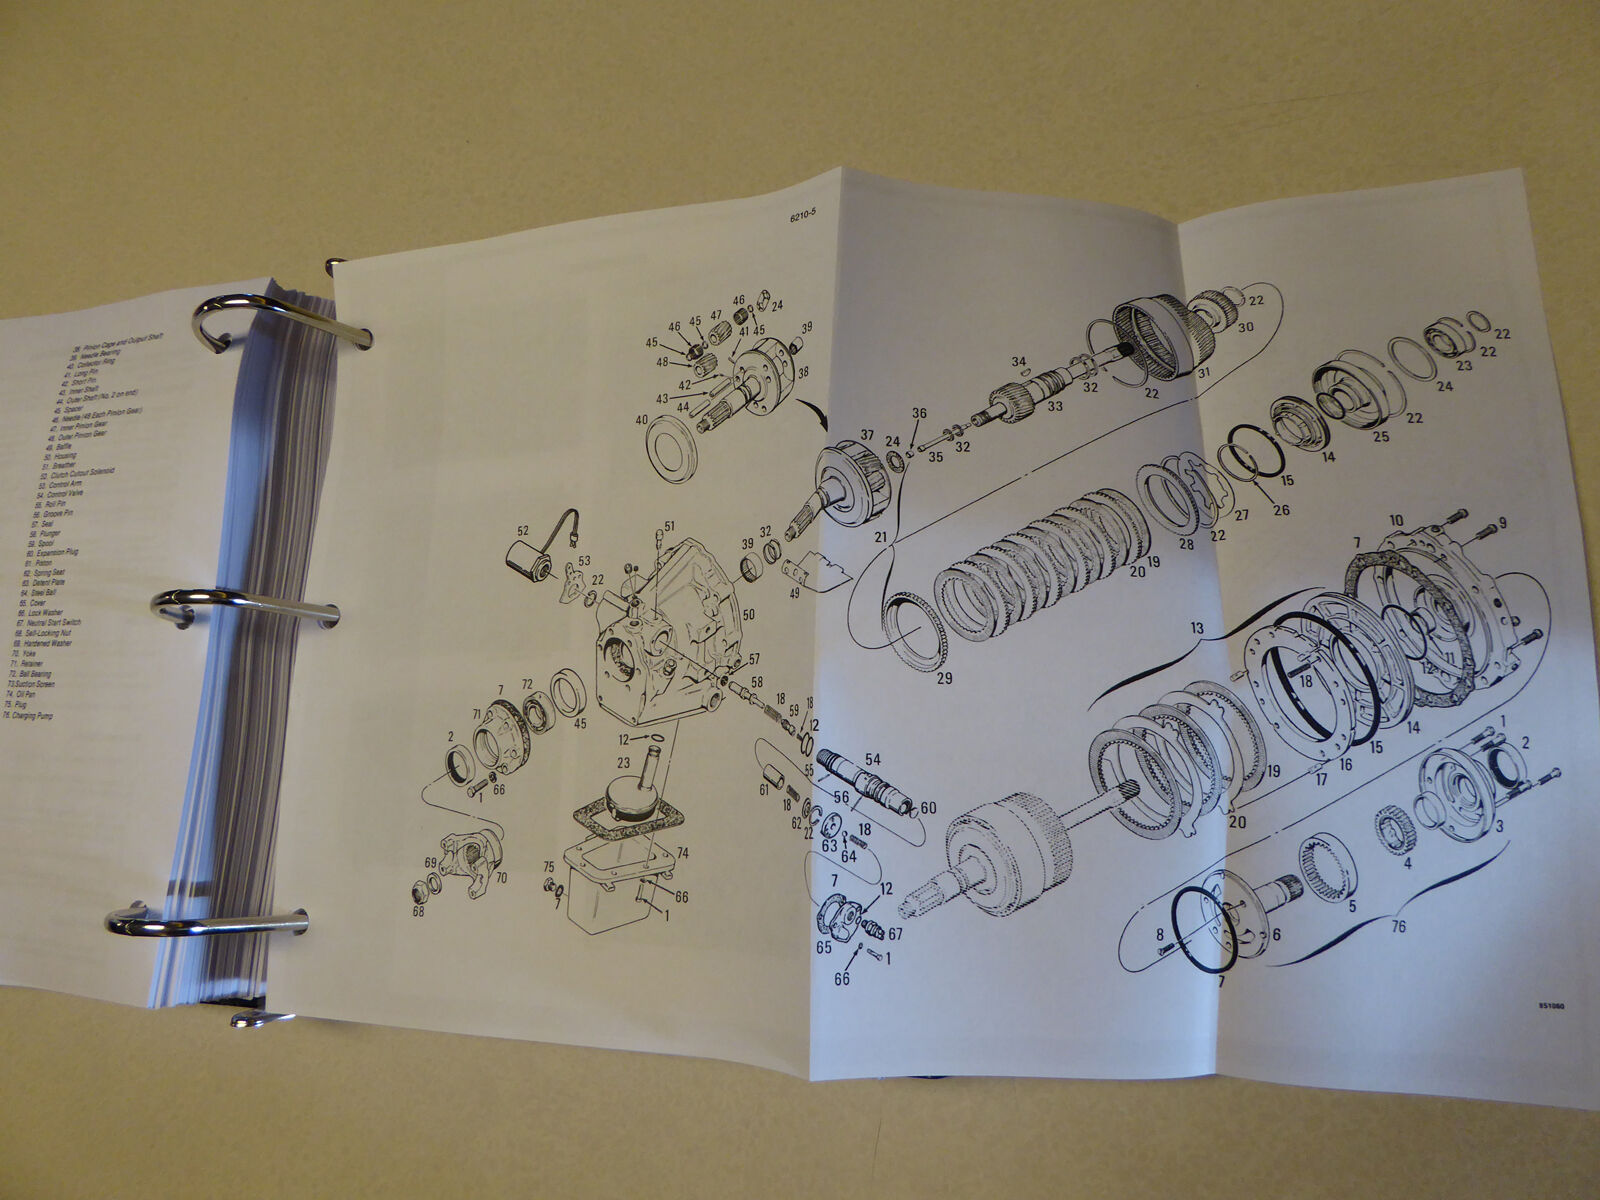 case 584e 585e 586e forklift service manual repair shop book with rh ebay com Simple Wiring Diagrams Basic Electrical Wiring Diagrams